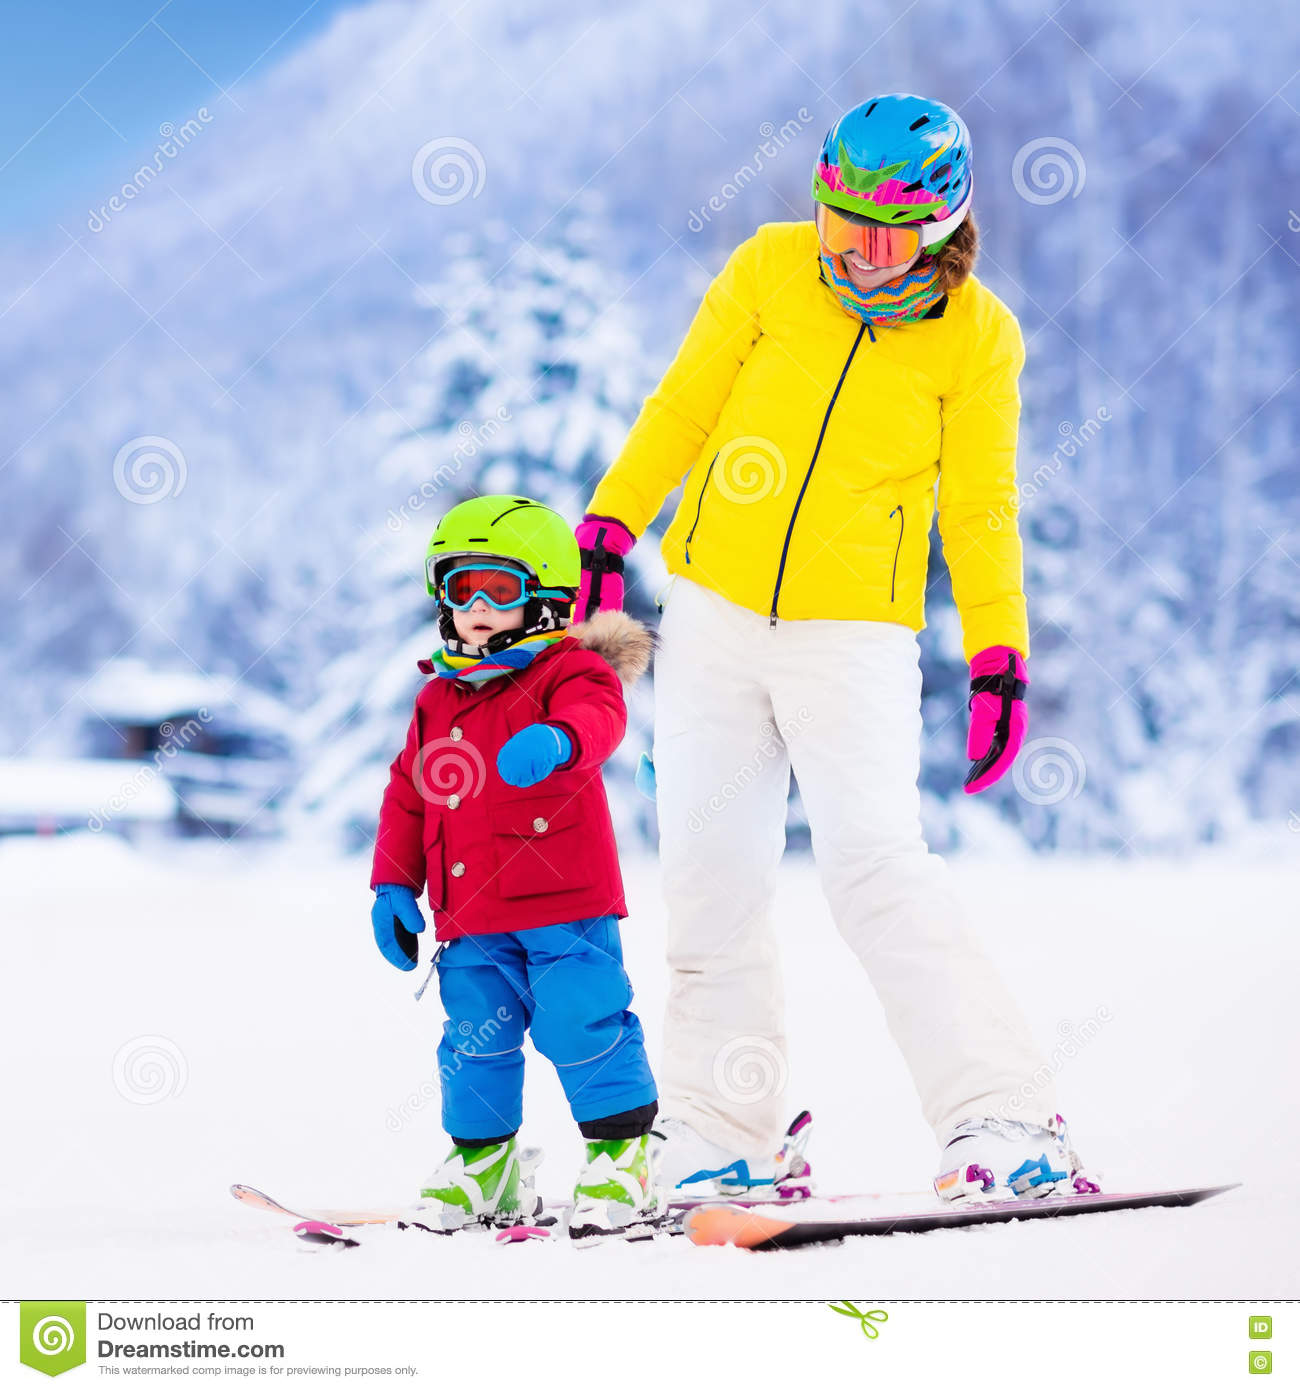 Mother and little boy learning to ski